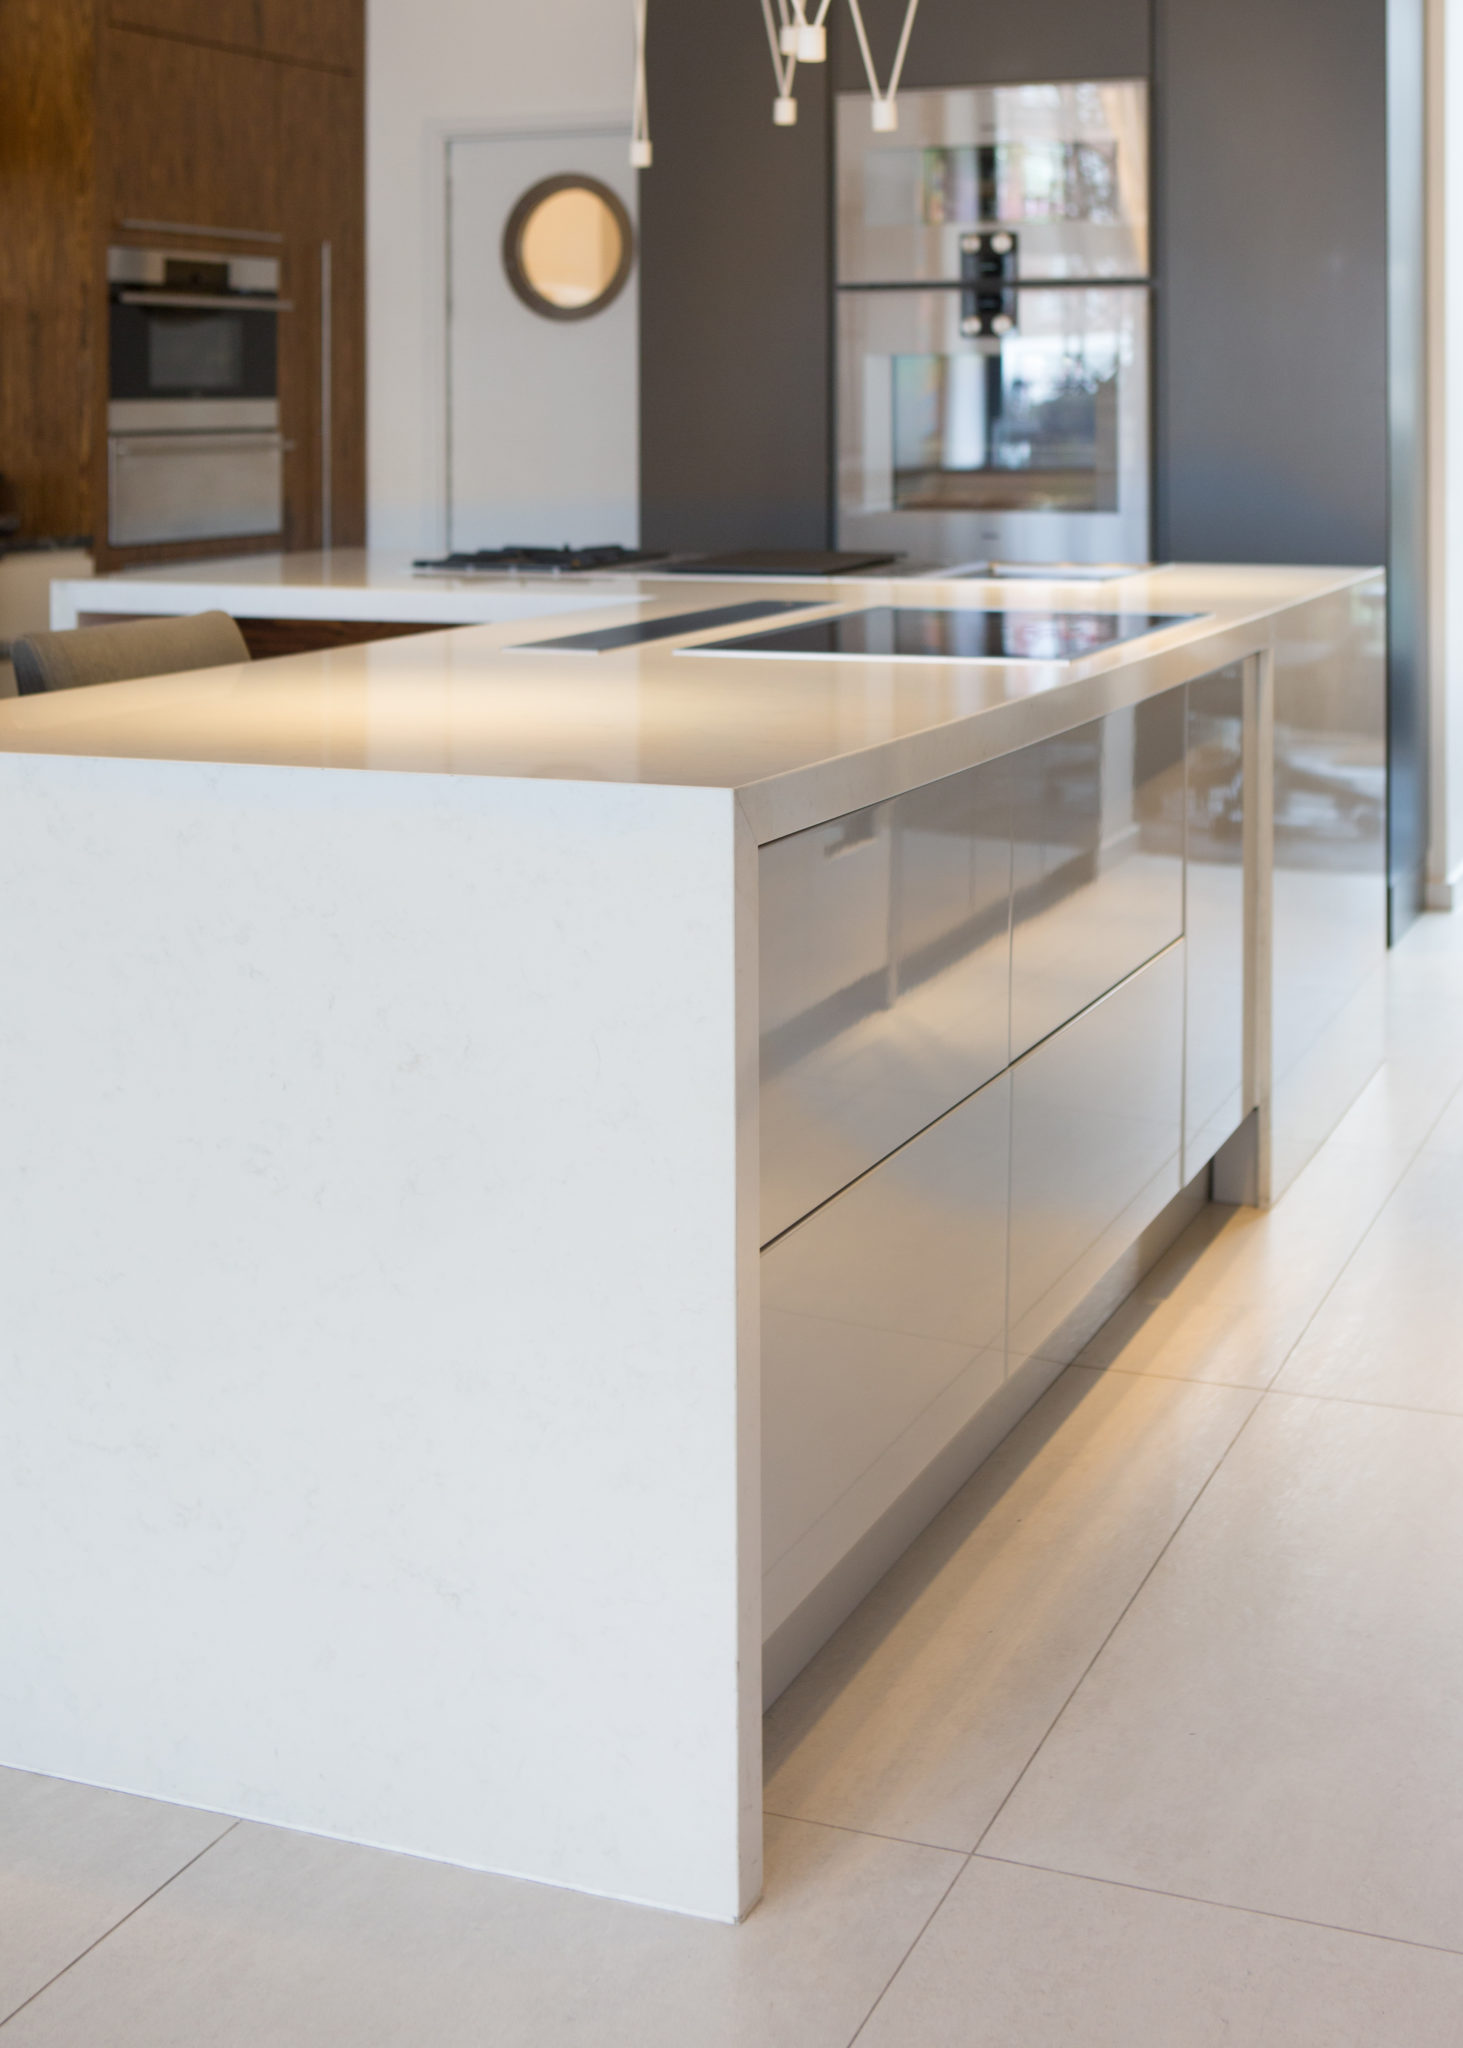 kitchen island with handle-less drawers